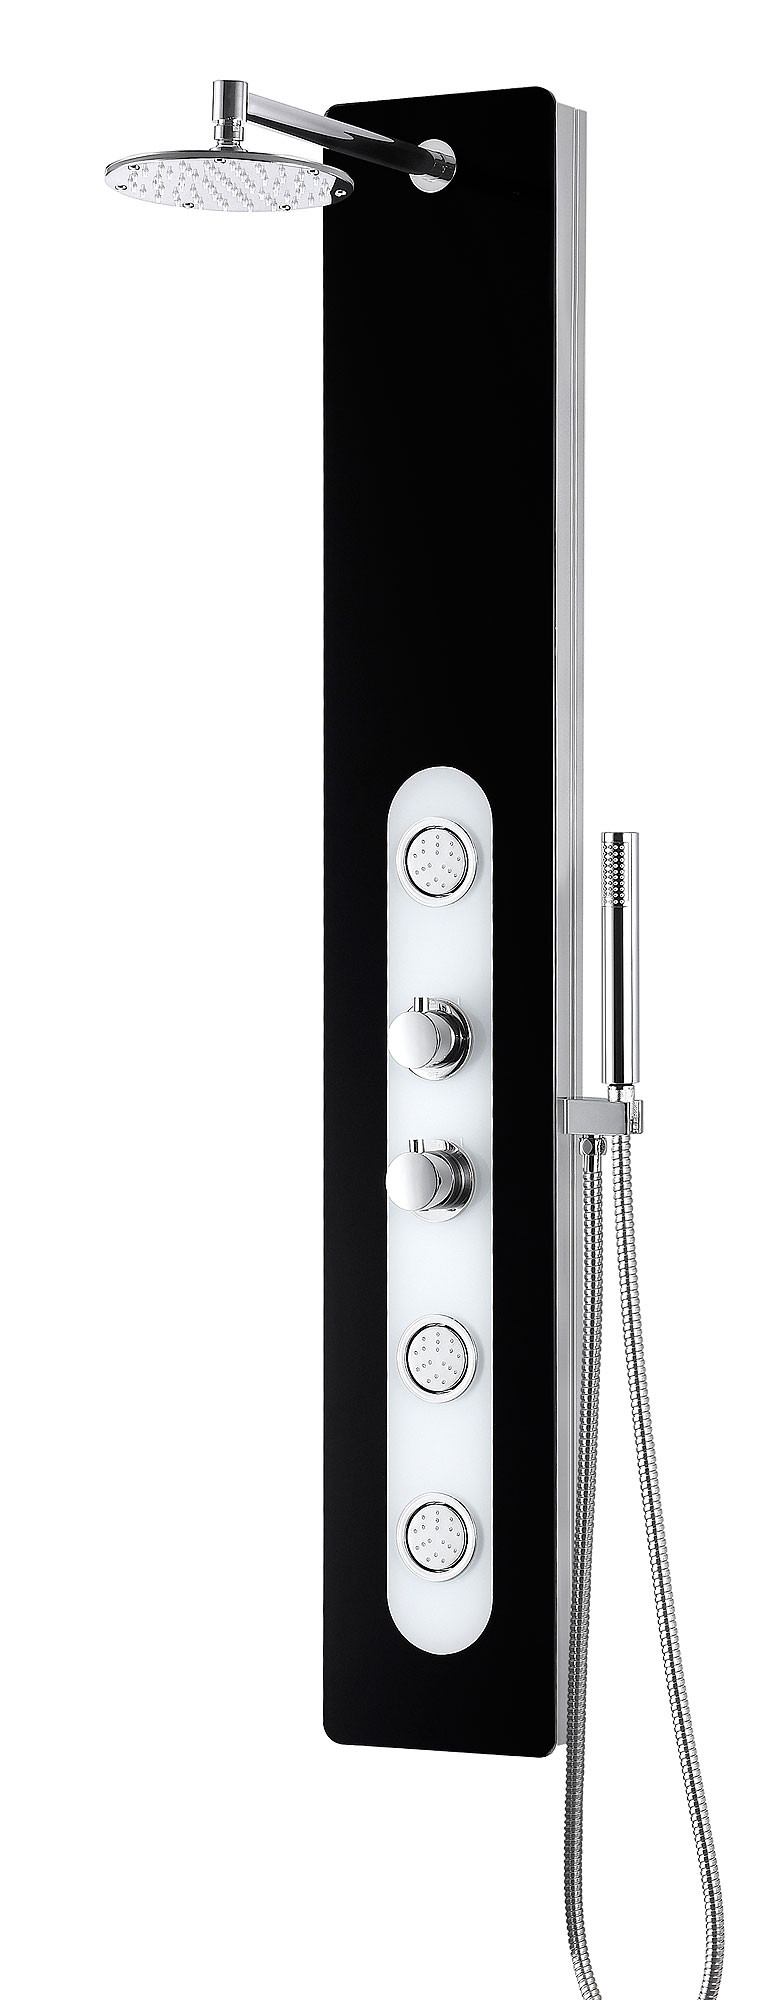 ANZZI SP-AZ049 Lande Series Shower Panel System With Rain Shower In Black